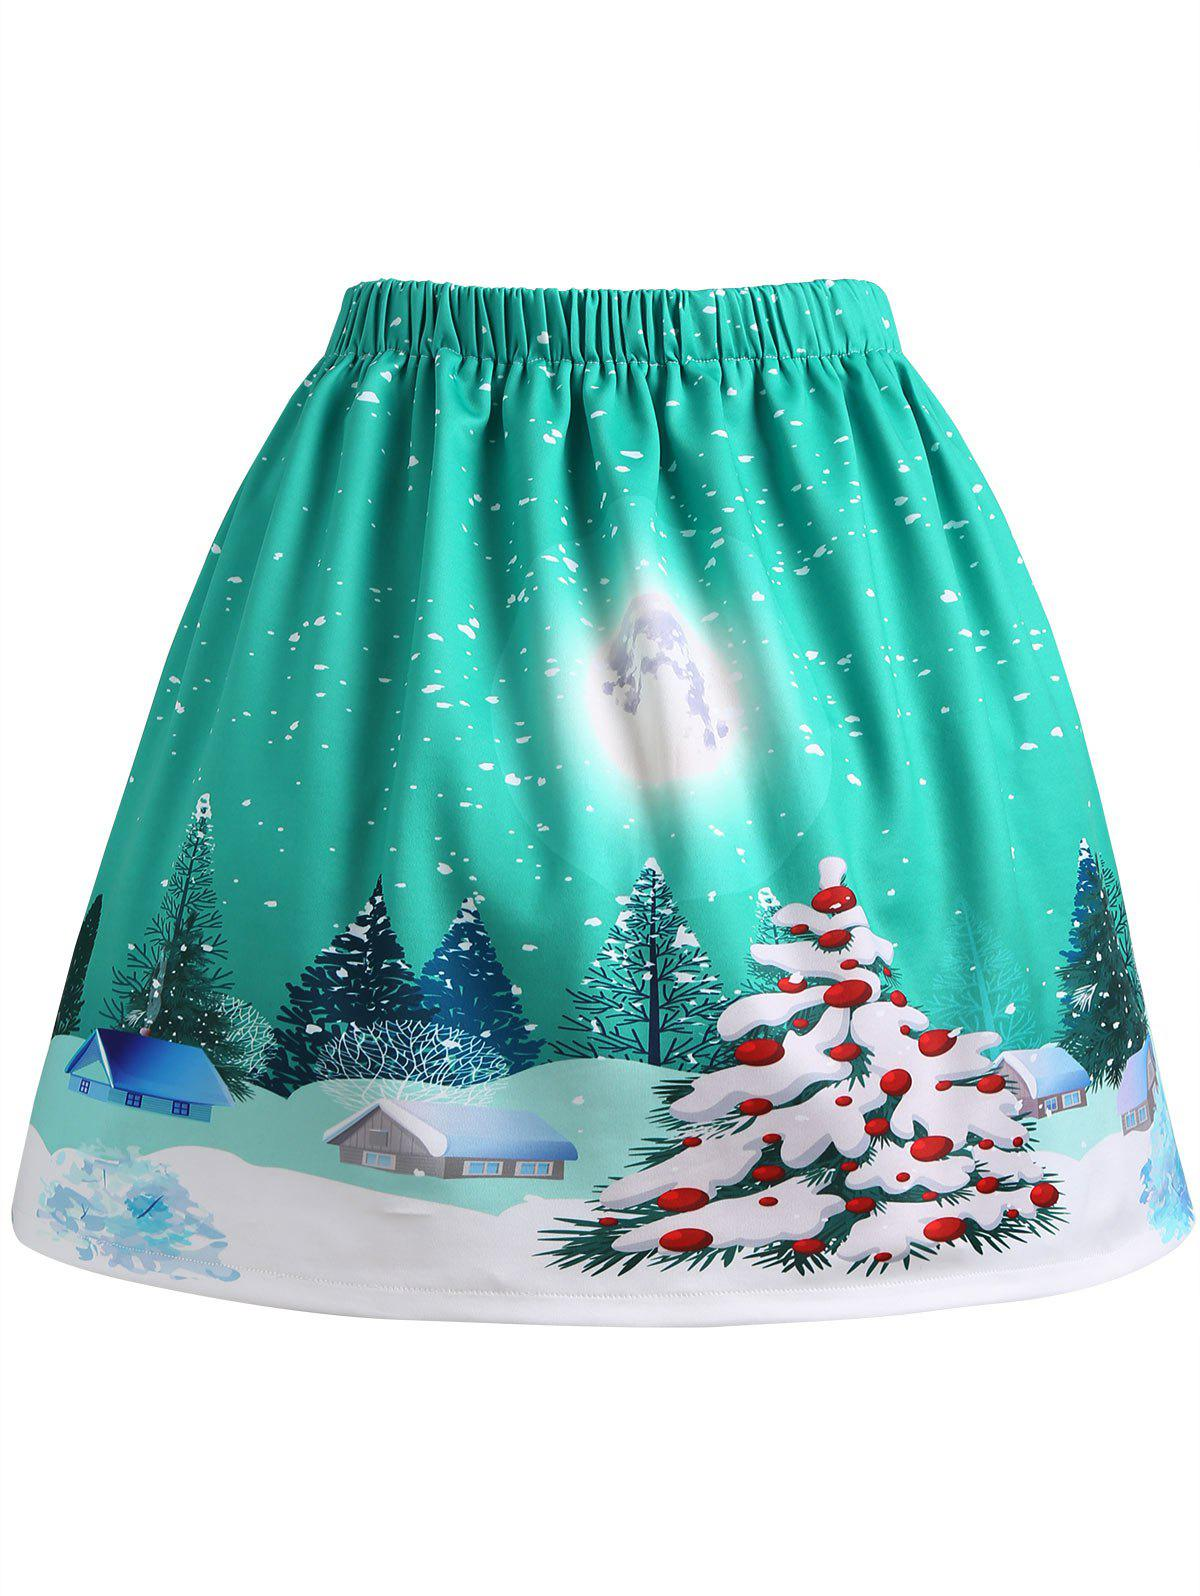 Christmas Tree Moon House Print Plus Size SkirtWOMEN<br><br>Size: 2XL; Color: GREEN; Material: Polyester; Length: Mini; Silhouette: A-Line; Pattern Type: Moon,Plant; Season: Fall,Winter; With Belt: No; Weight: 0.3100kg; Package Contents: 1 x Skirt;